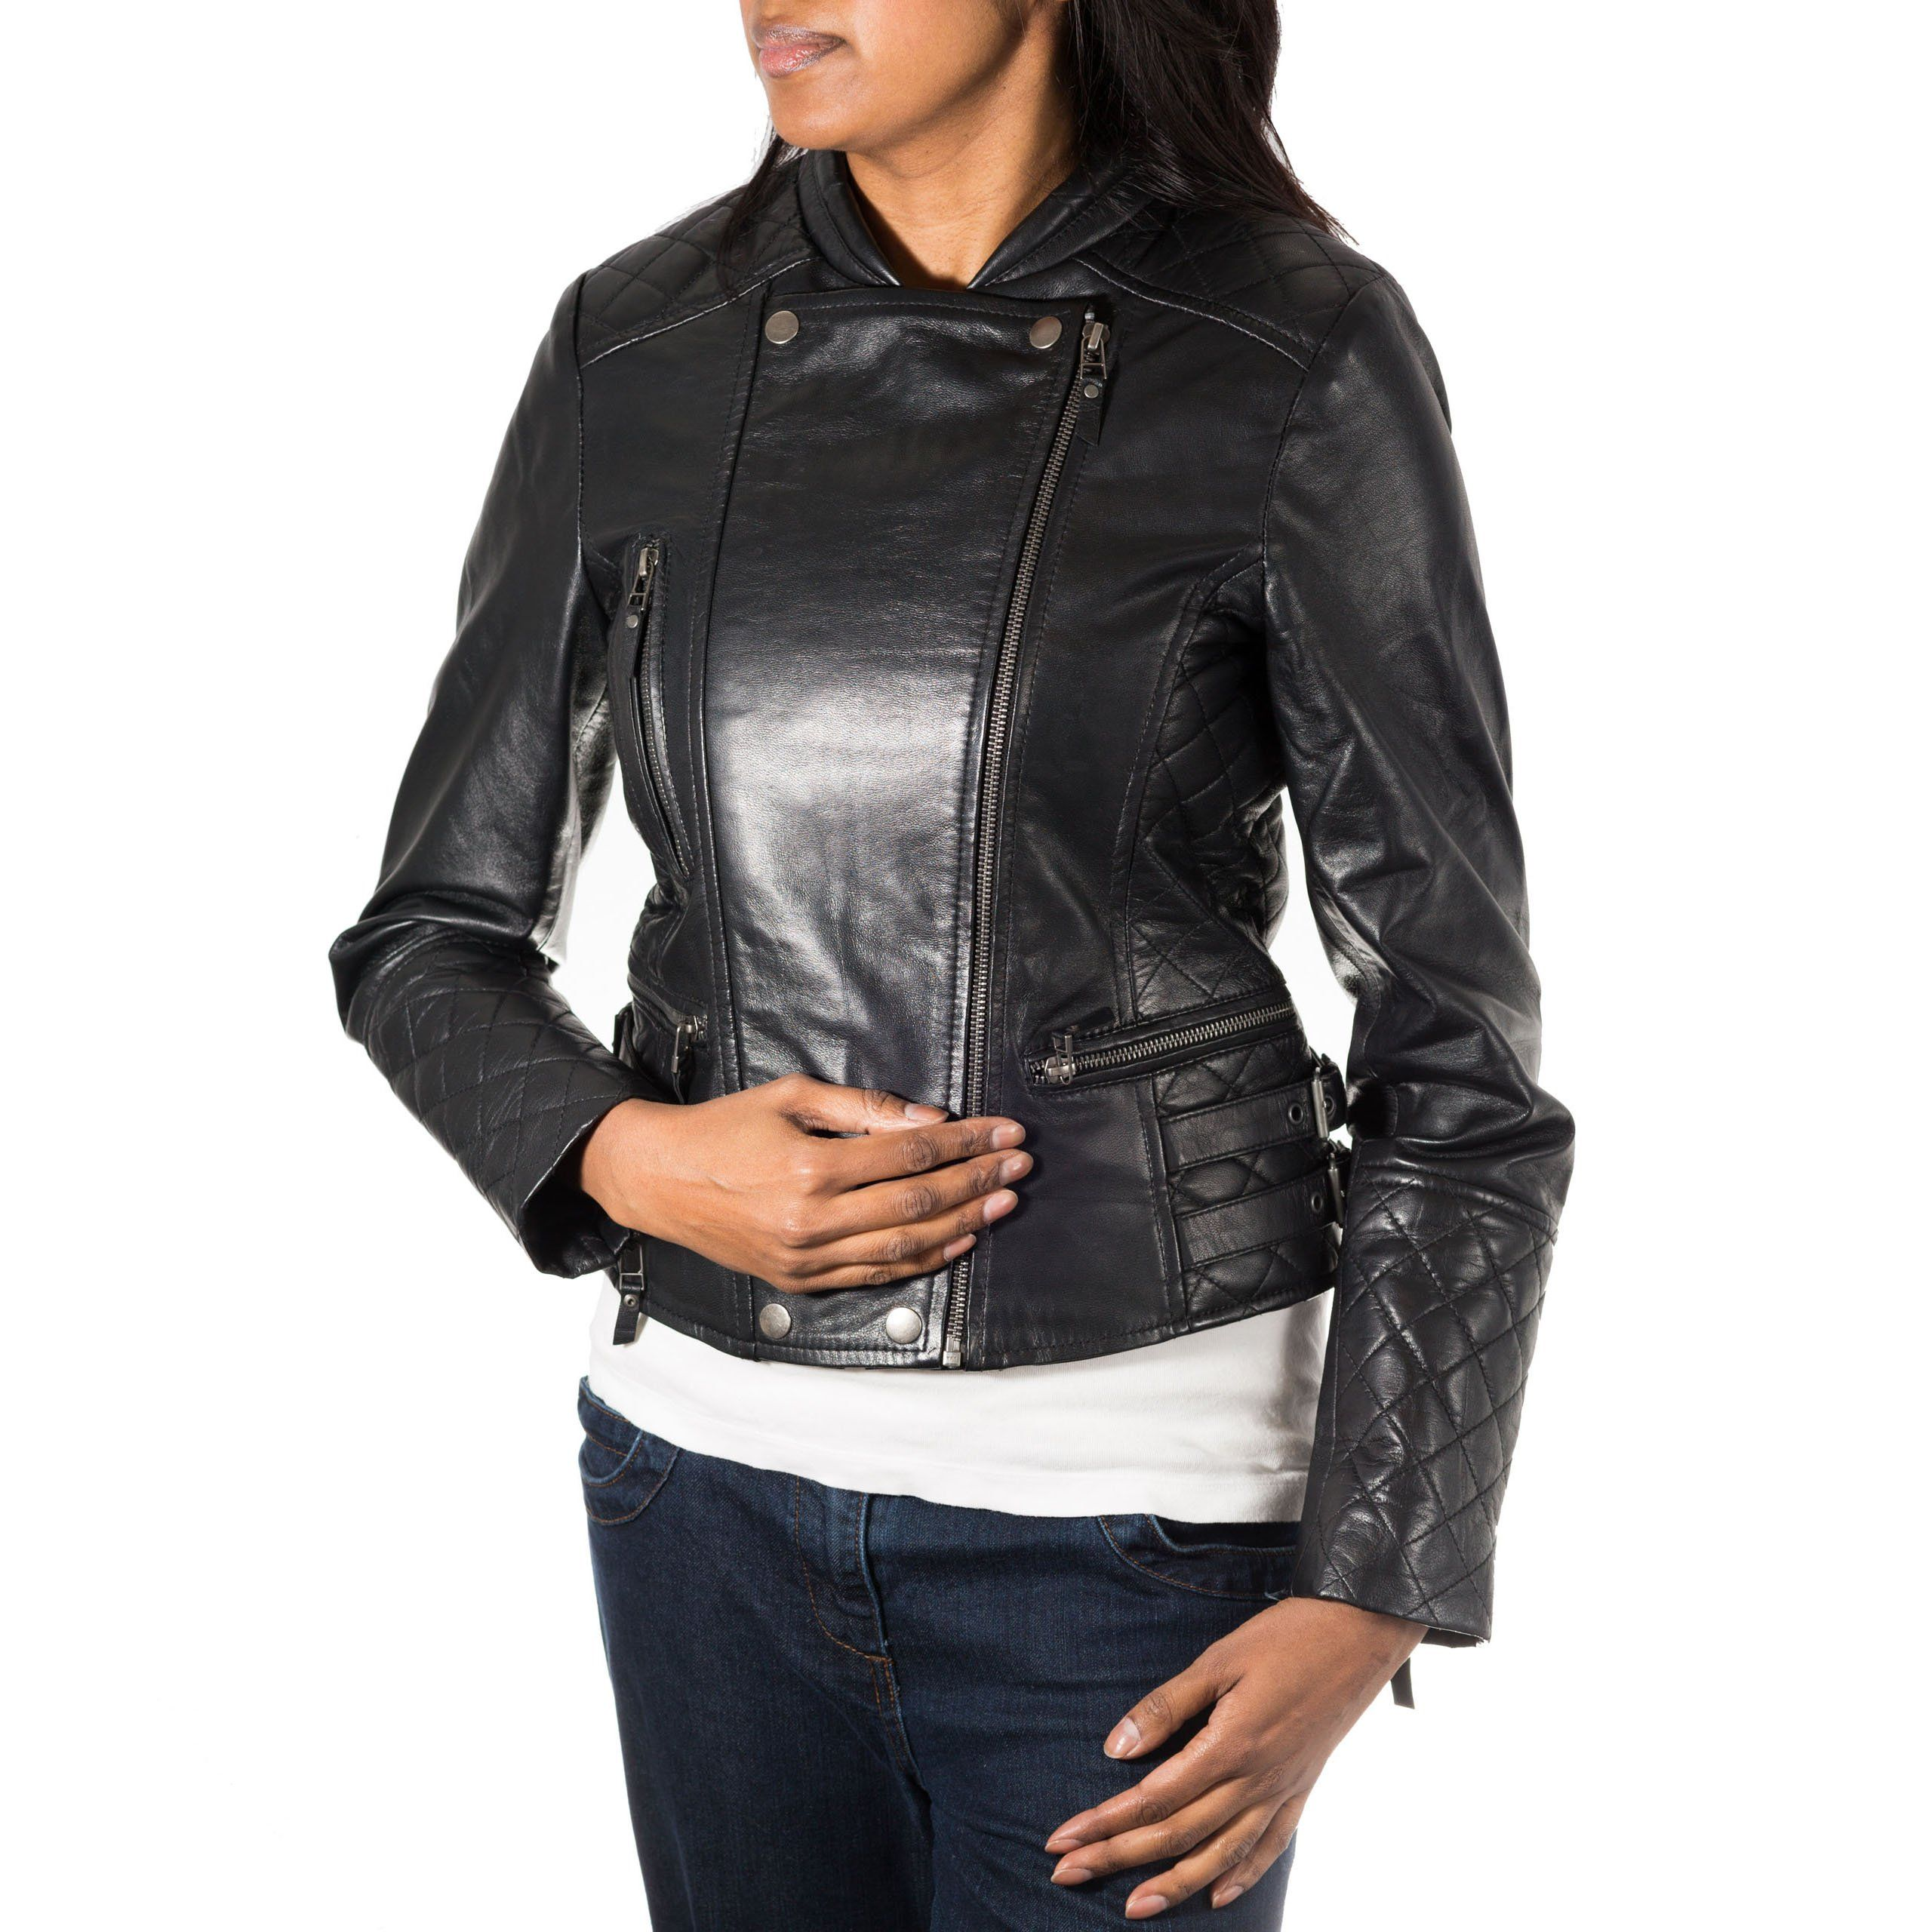 Womens real leather diamond quilted double zipper biker